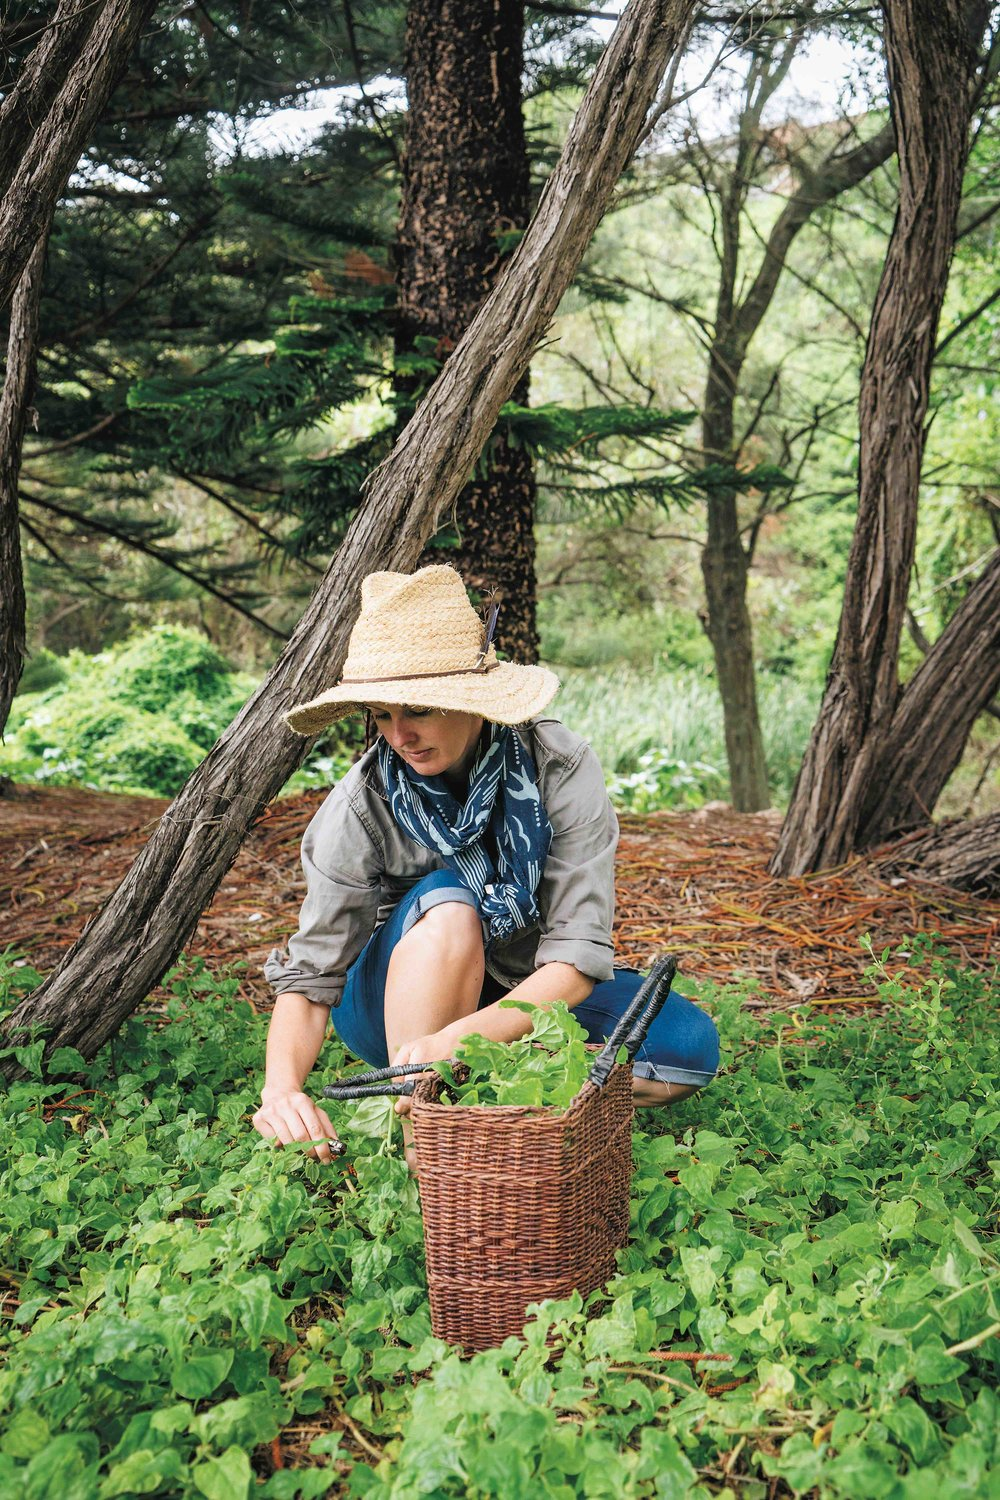 Image supplied by Milkwood Permaculture.